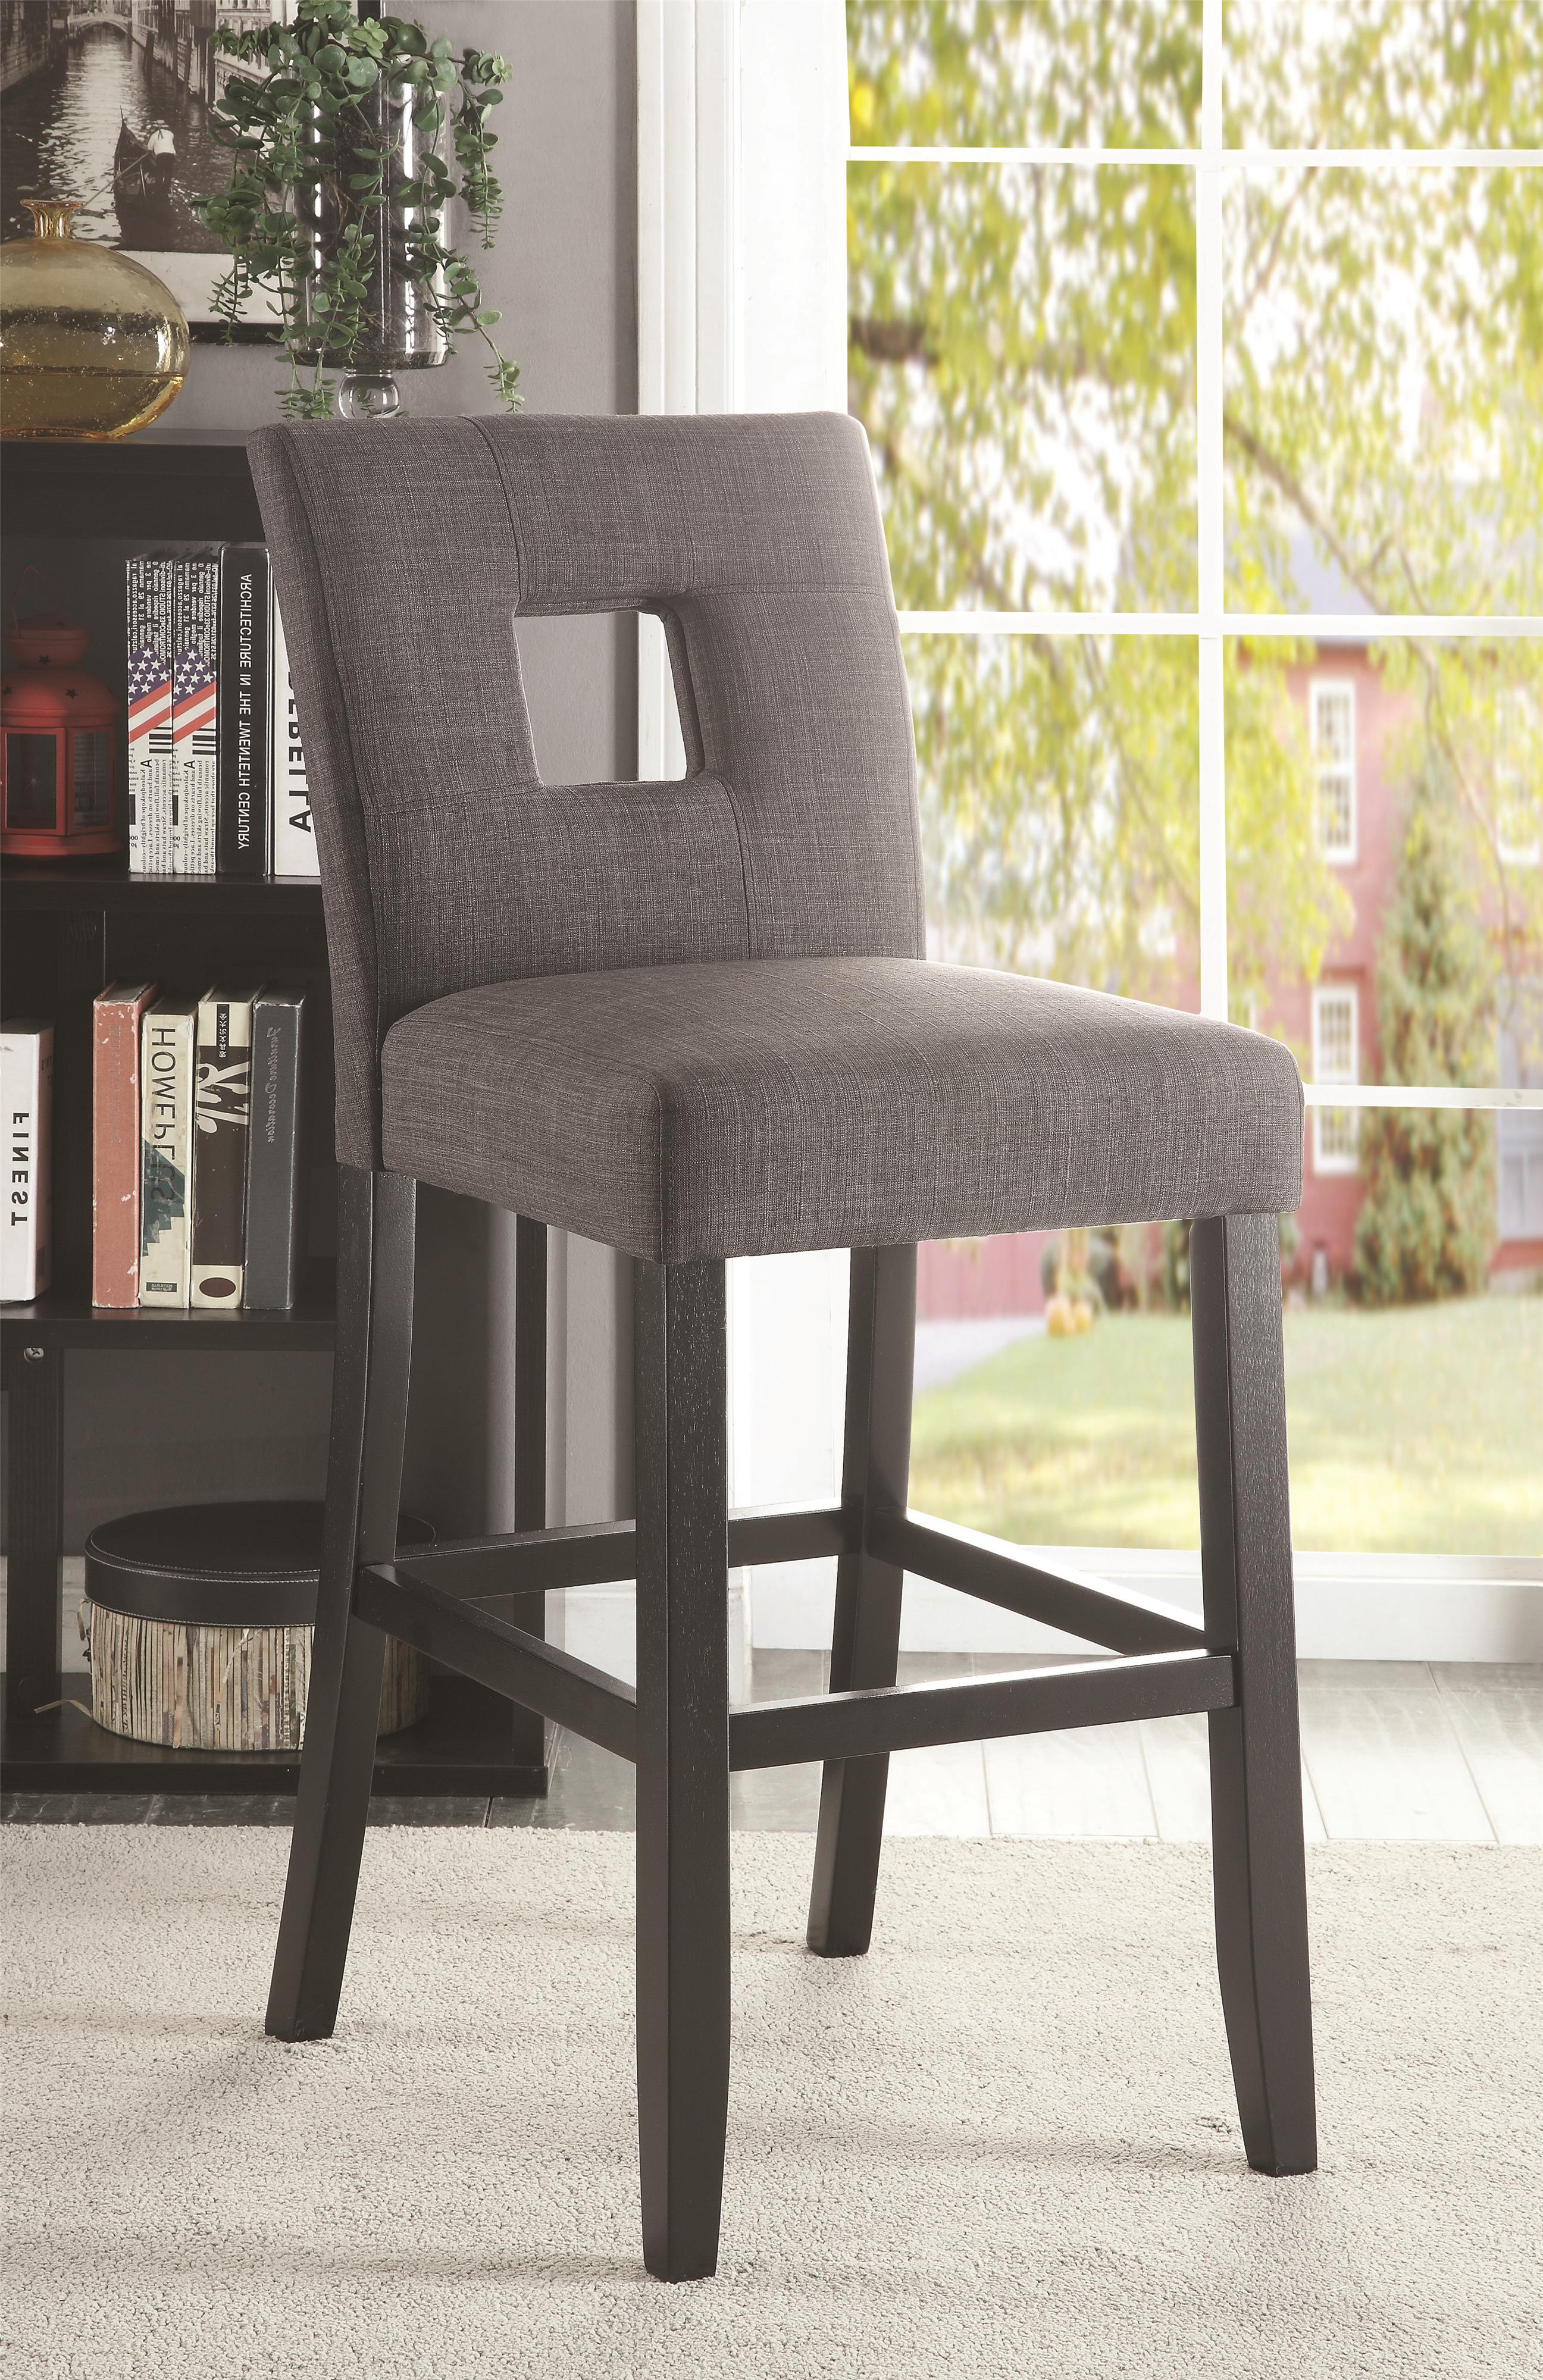 Andenne Counter Height Chair by Coaster at Value City Furniture